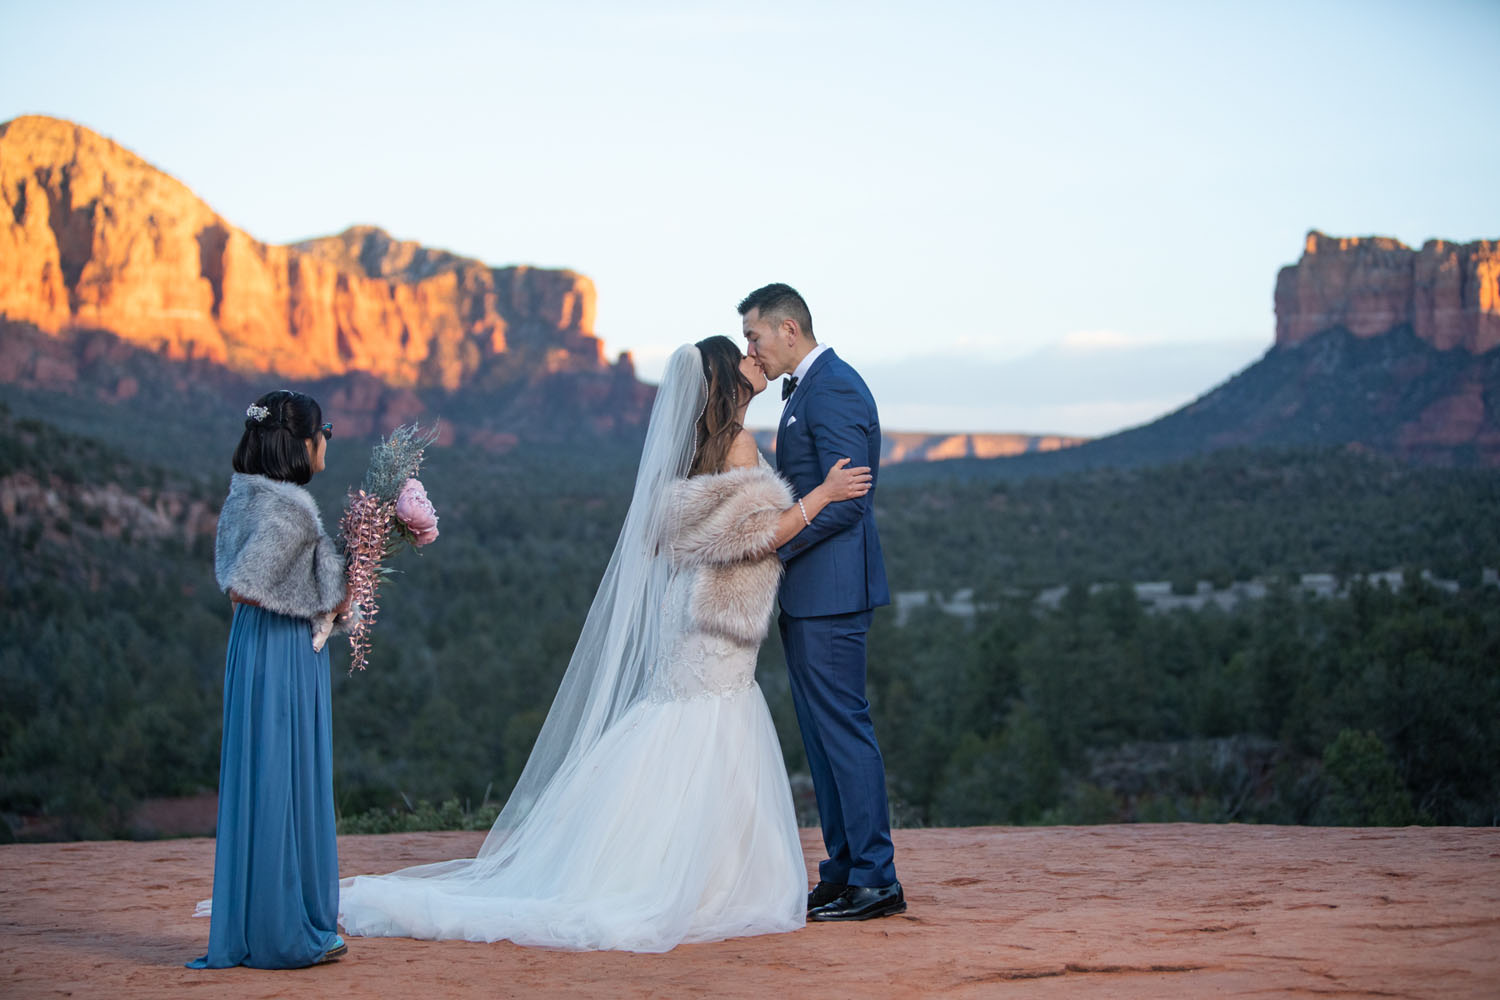 Victor Vongpraseuth and Andrea Thomas tied the knot on Jan. 1, 2020 at Cathedral Rock in Sedona after getting ready at the Creakside Inn. Photo by Sean Openshaw / www.SeanOpenshaw.com